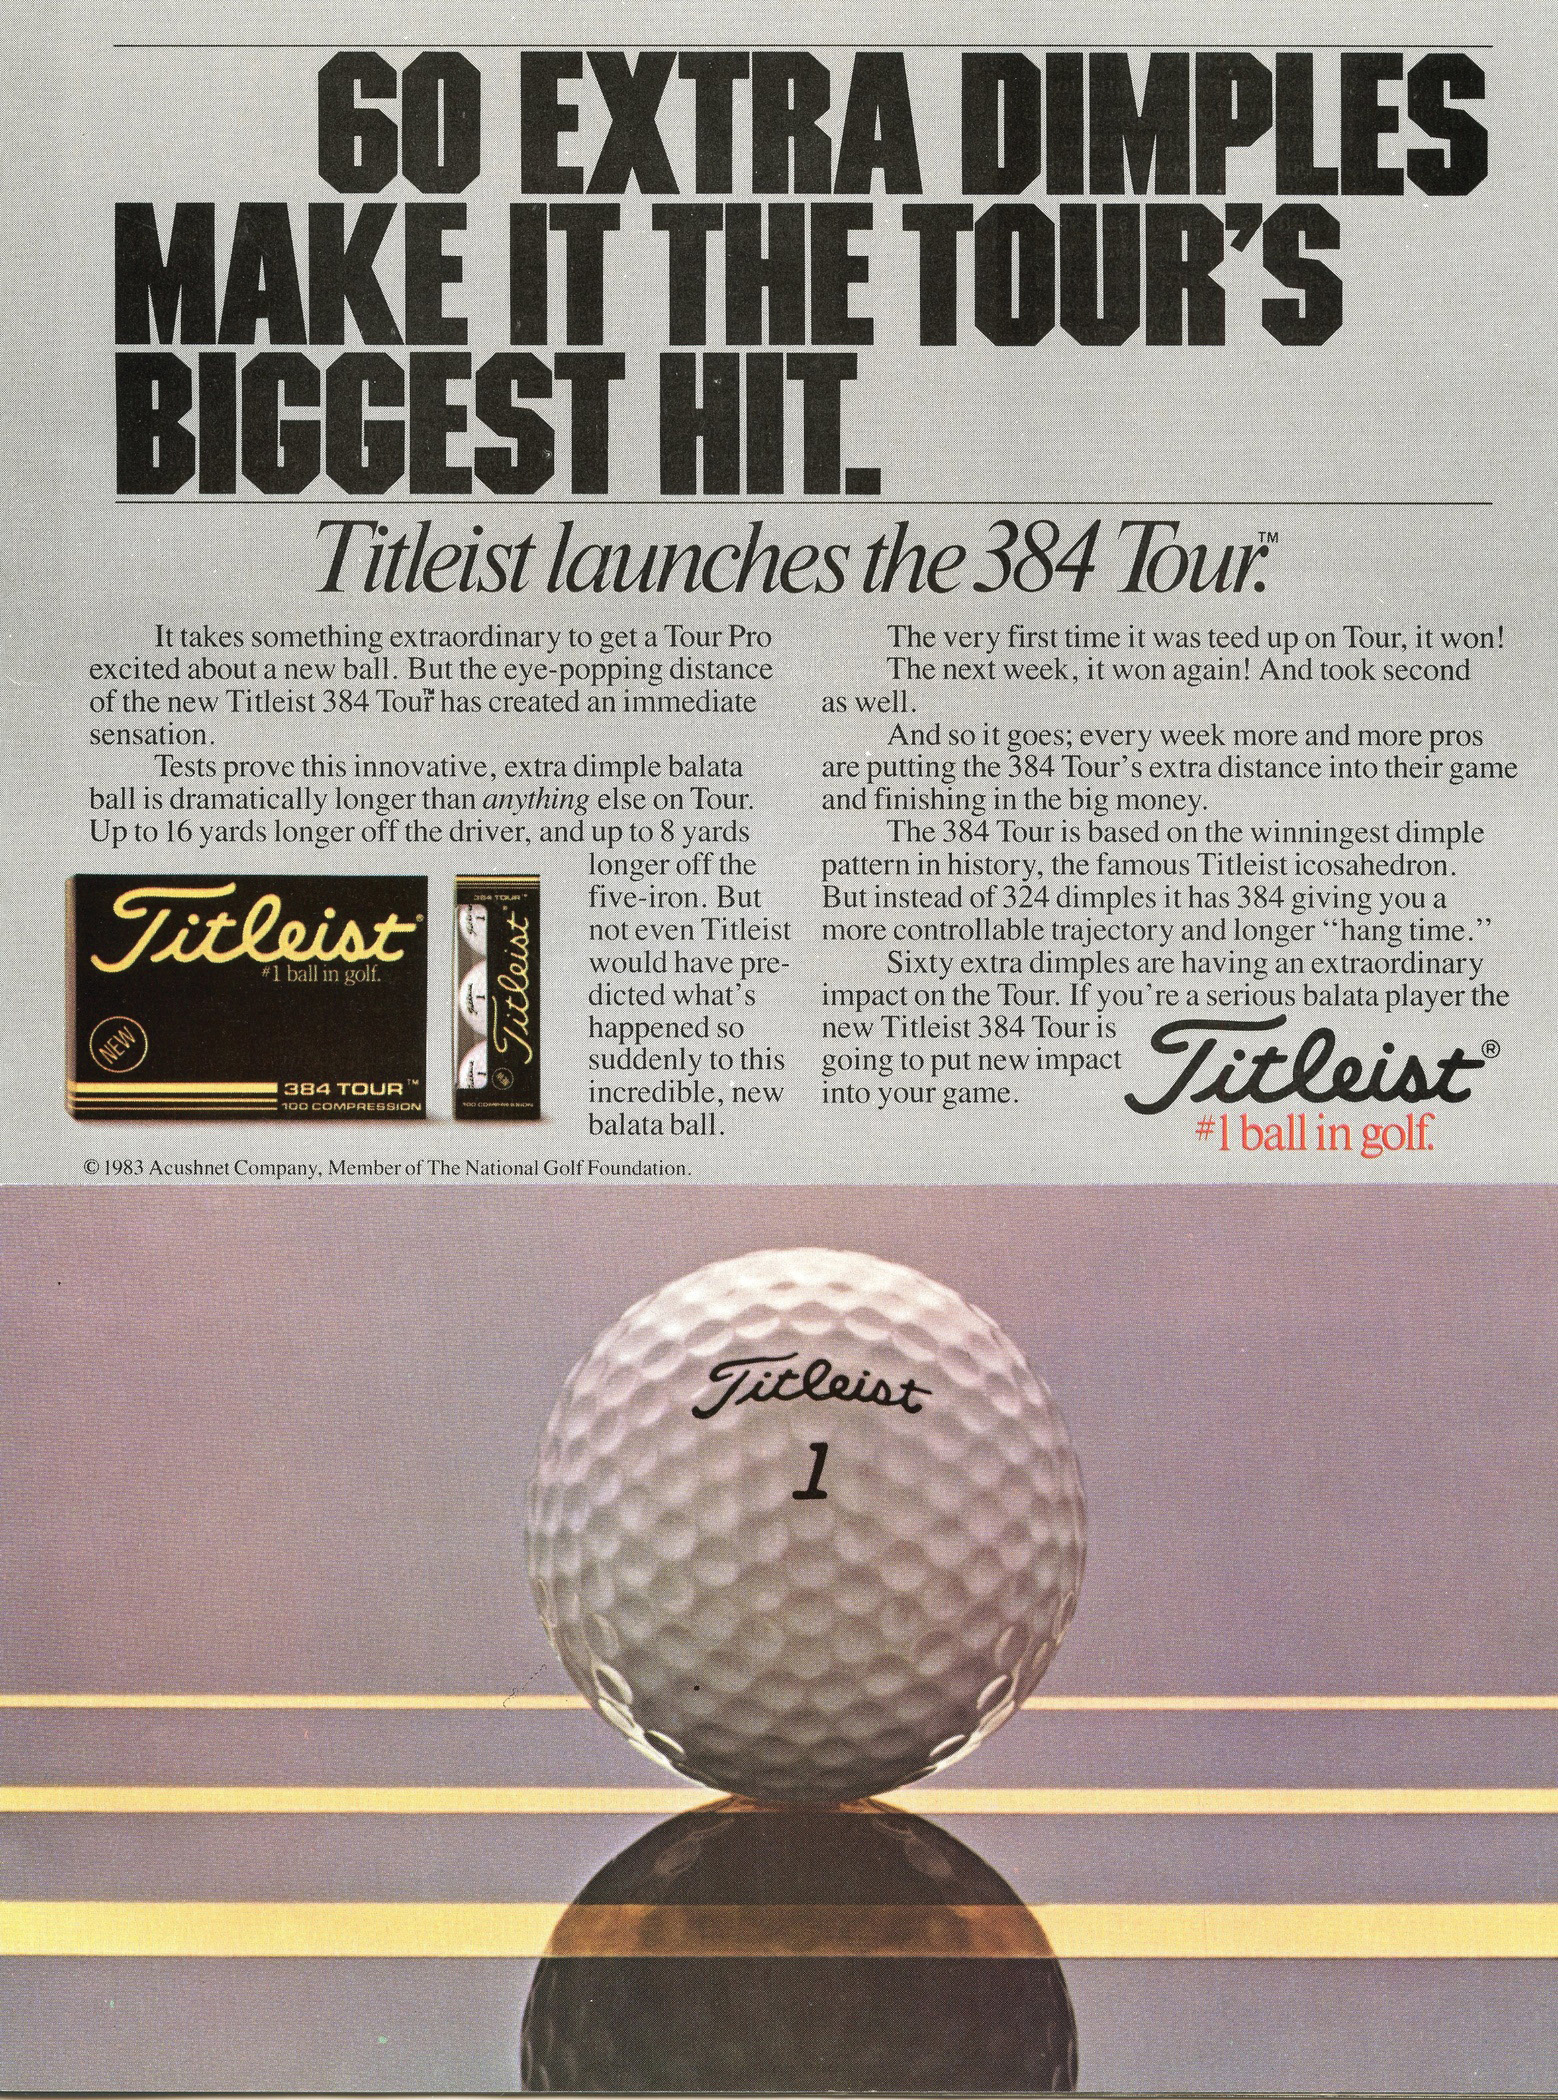 Titleist 384 Tour becomes up to 16 yards longer with the driver (Photo: Titleist)